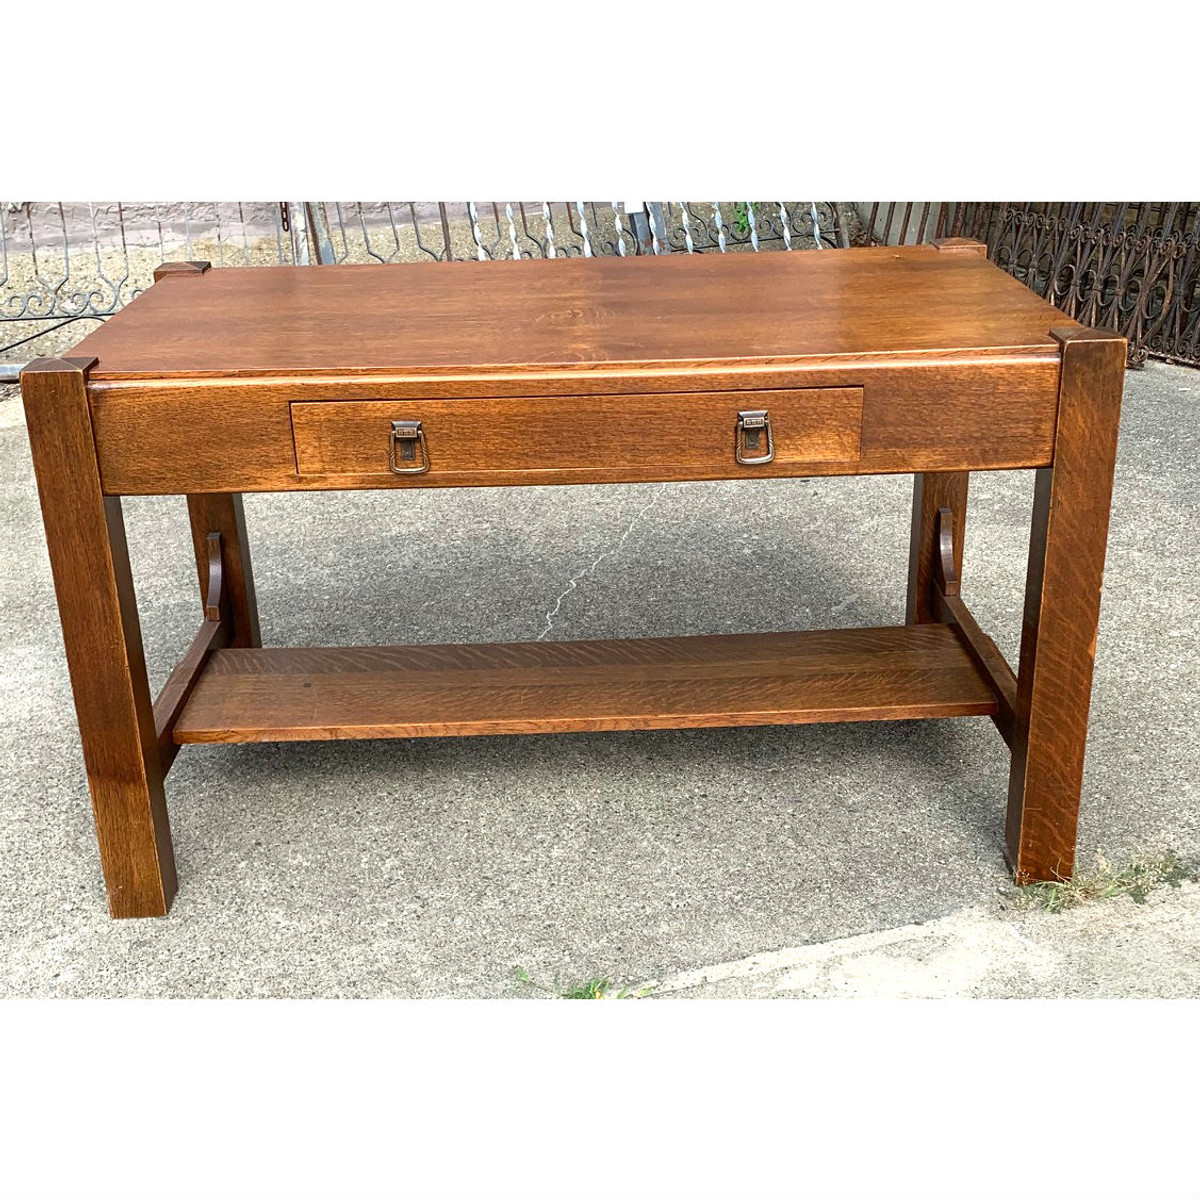 F20052 - Antique Arts & Crafts Library Table/Desk